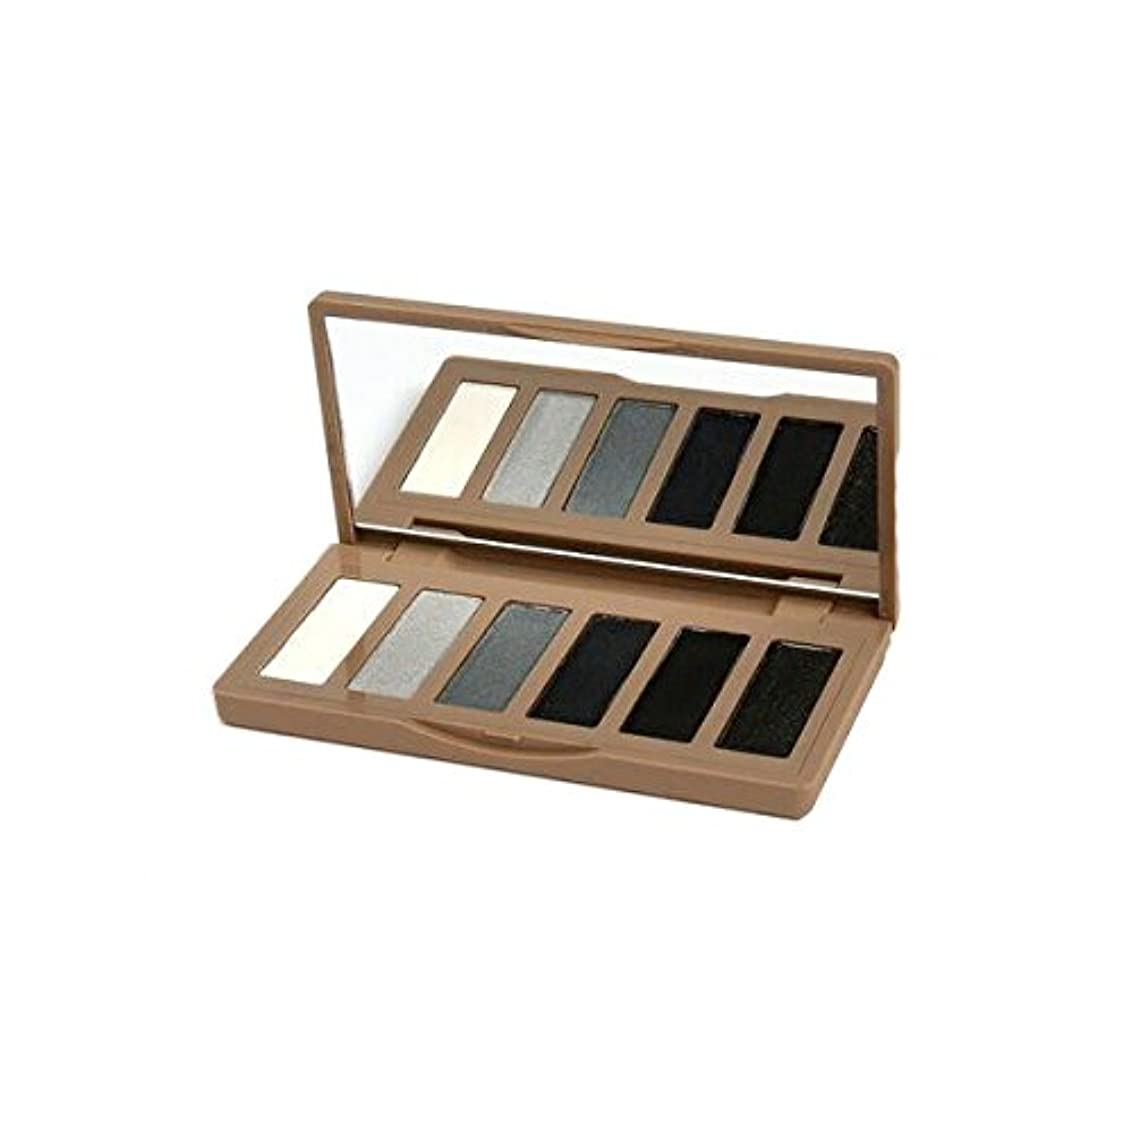 ふける抜け目がない遺伝子Beauty Creations The Petite Collection Eyeshadow Palette - Palette B (並行輸入品)